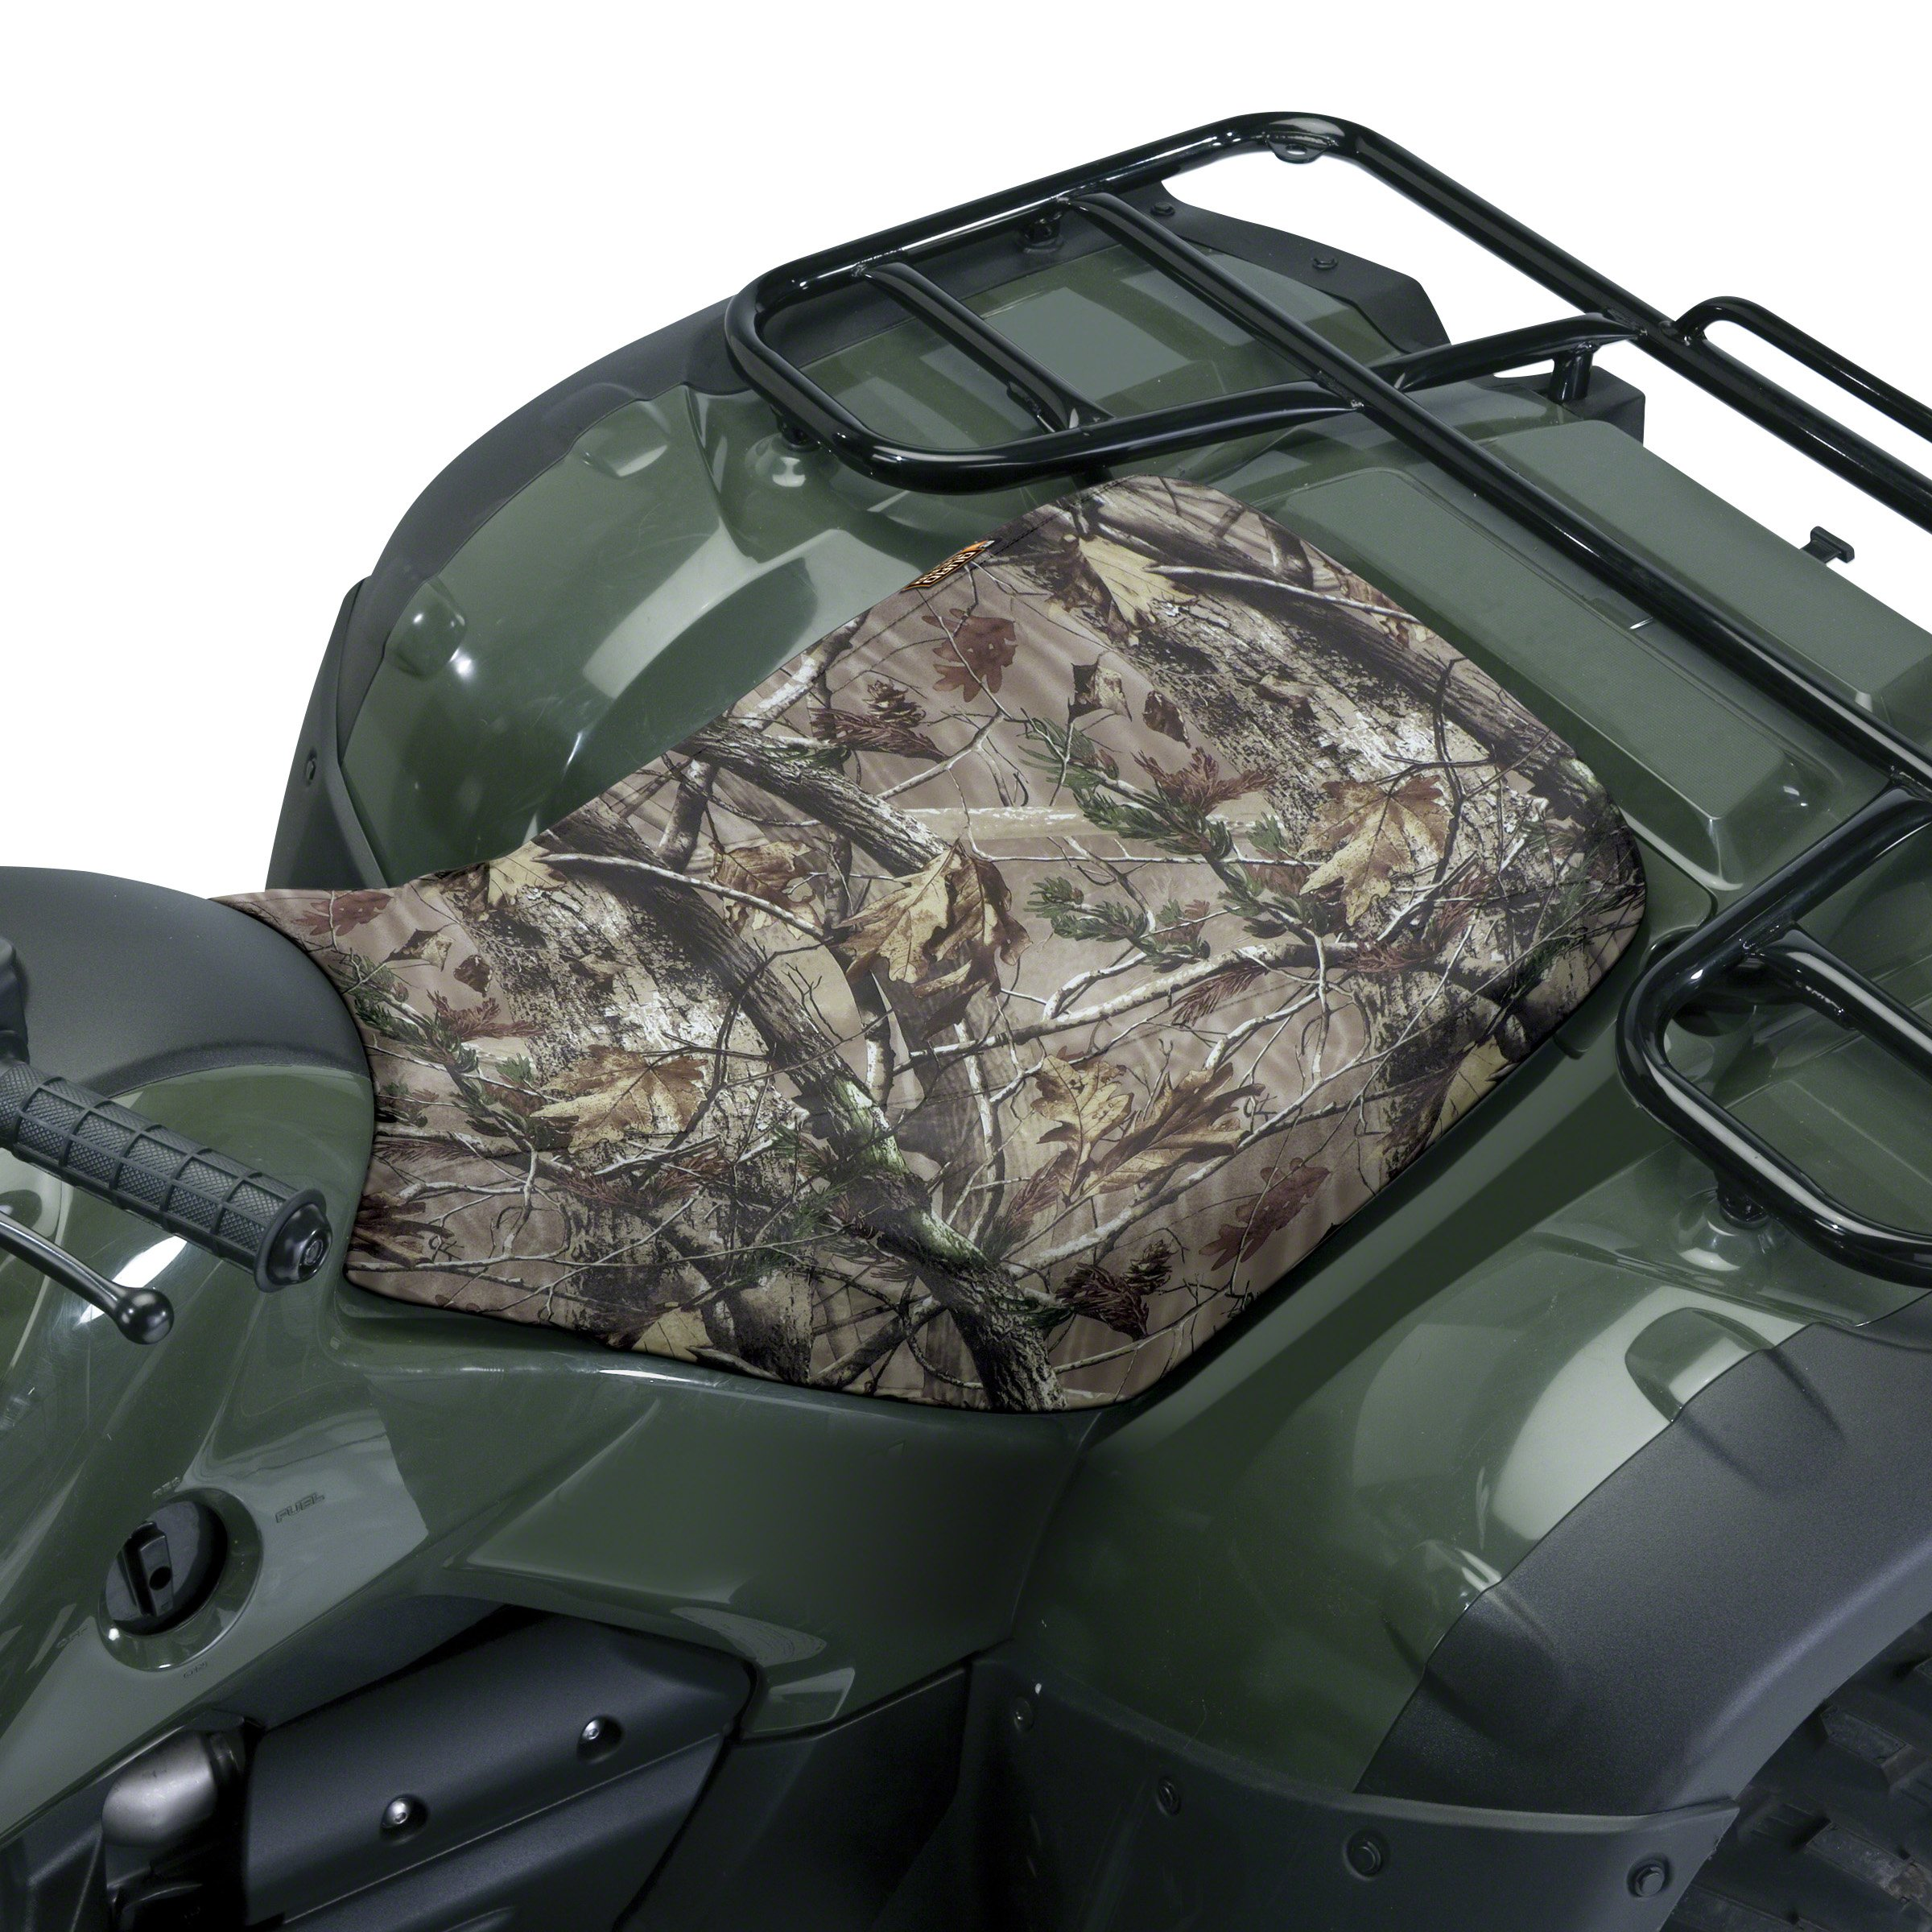 Classic Accessories 15-116-015901-00 QuadGear Camo ATV Seat Cover